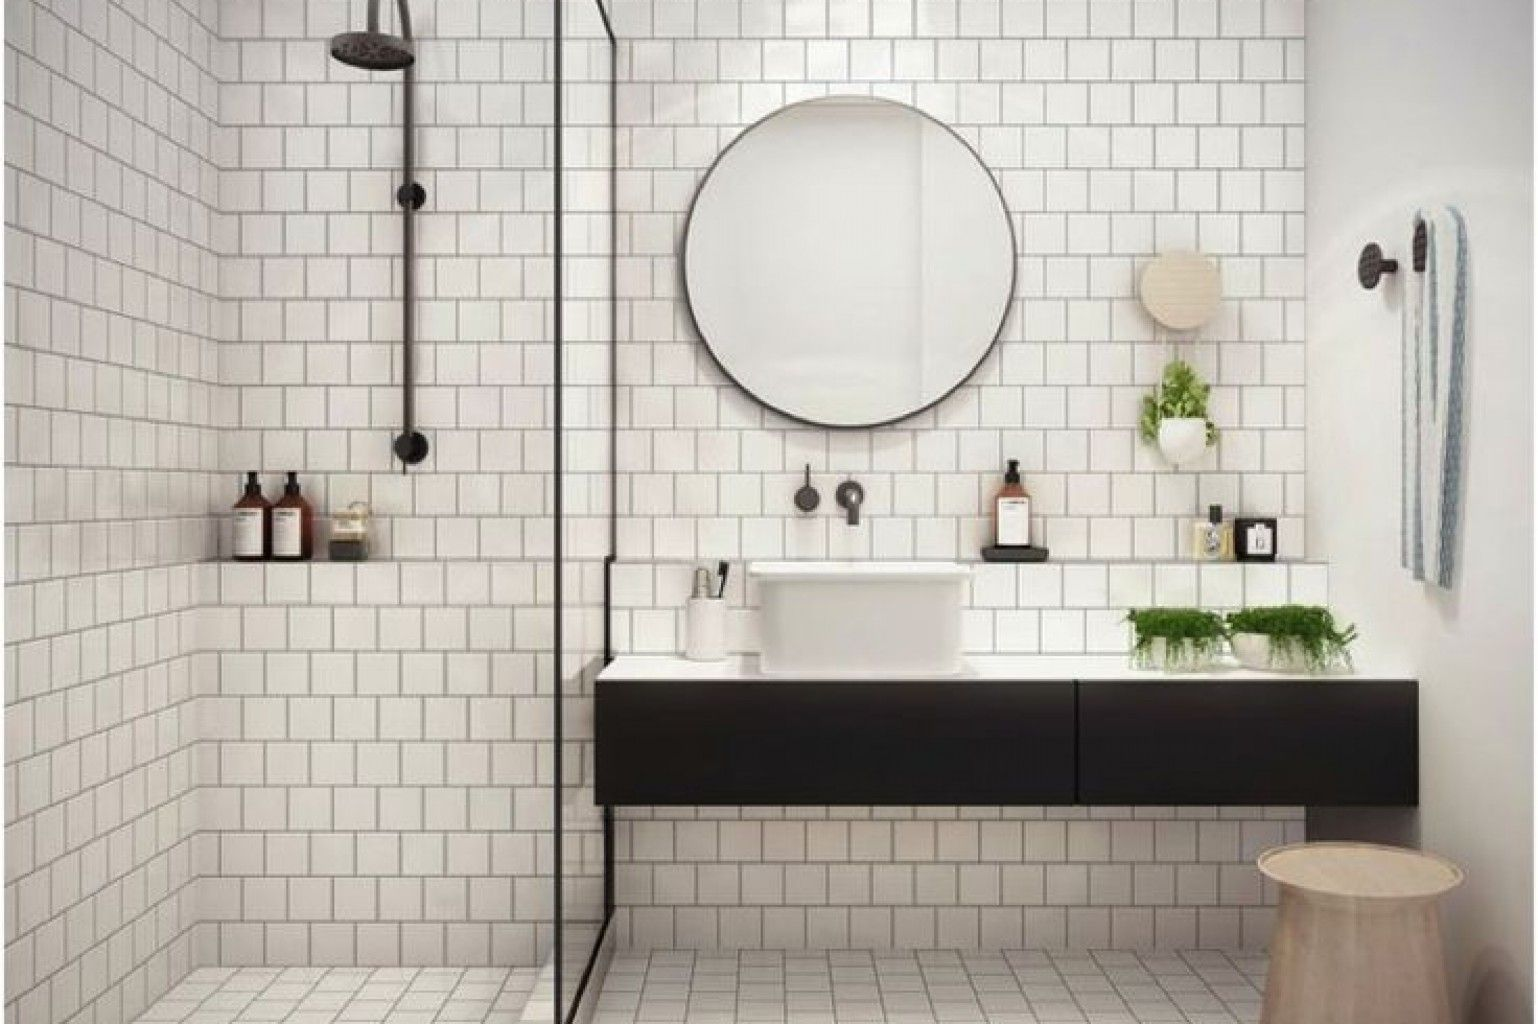 Sweet Soaps | Bathroom tiling, Sinks and Bowls